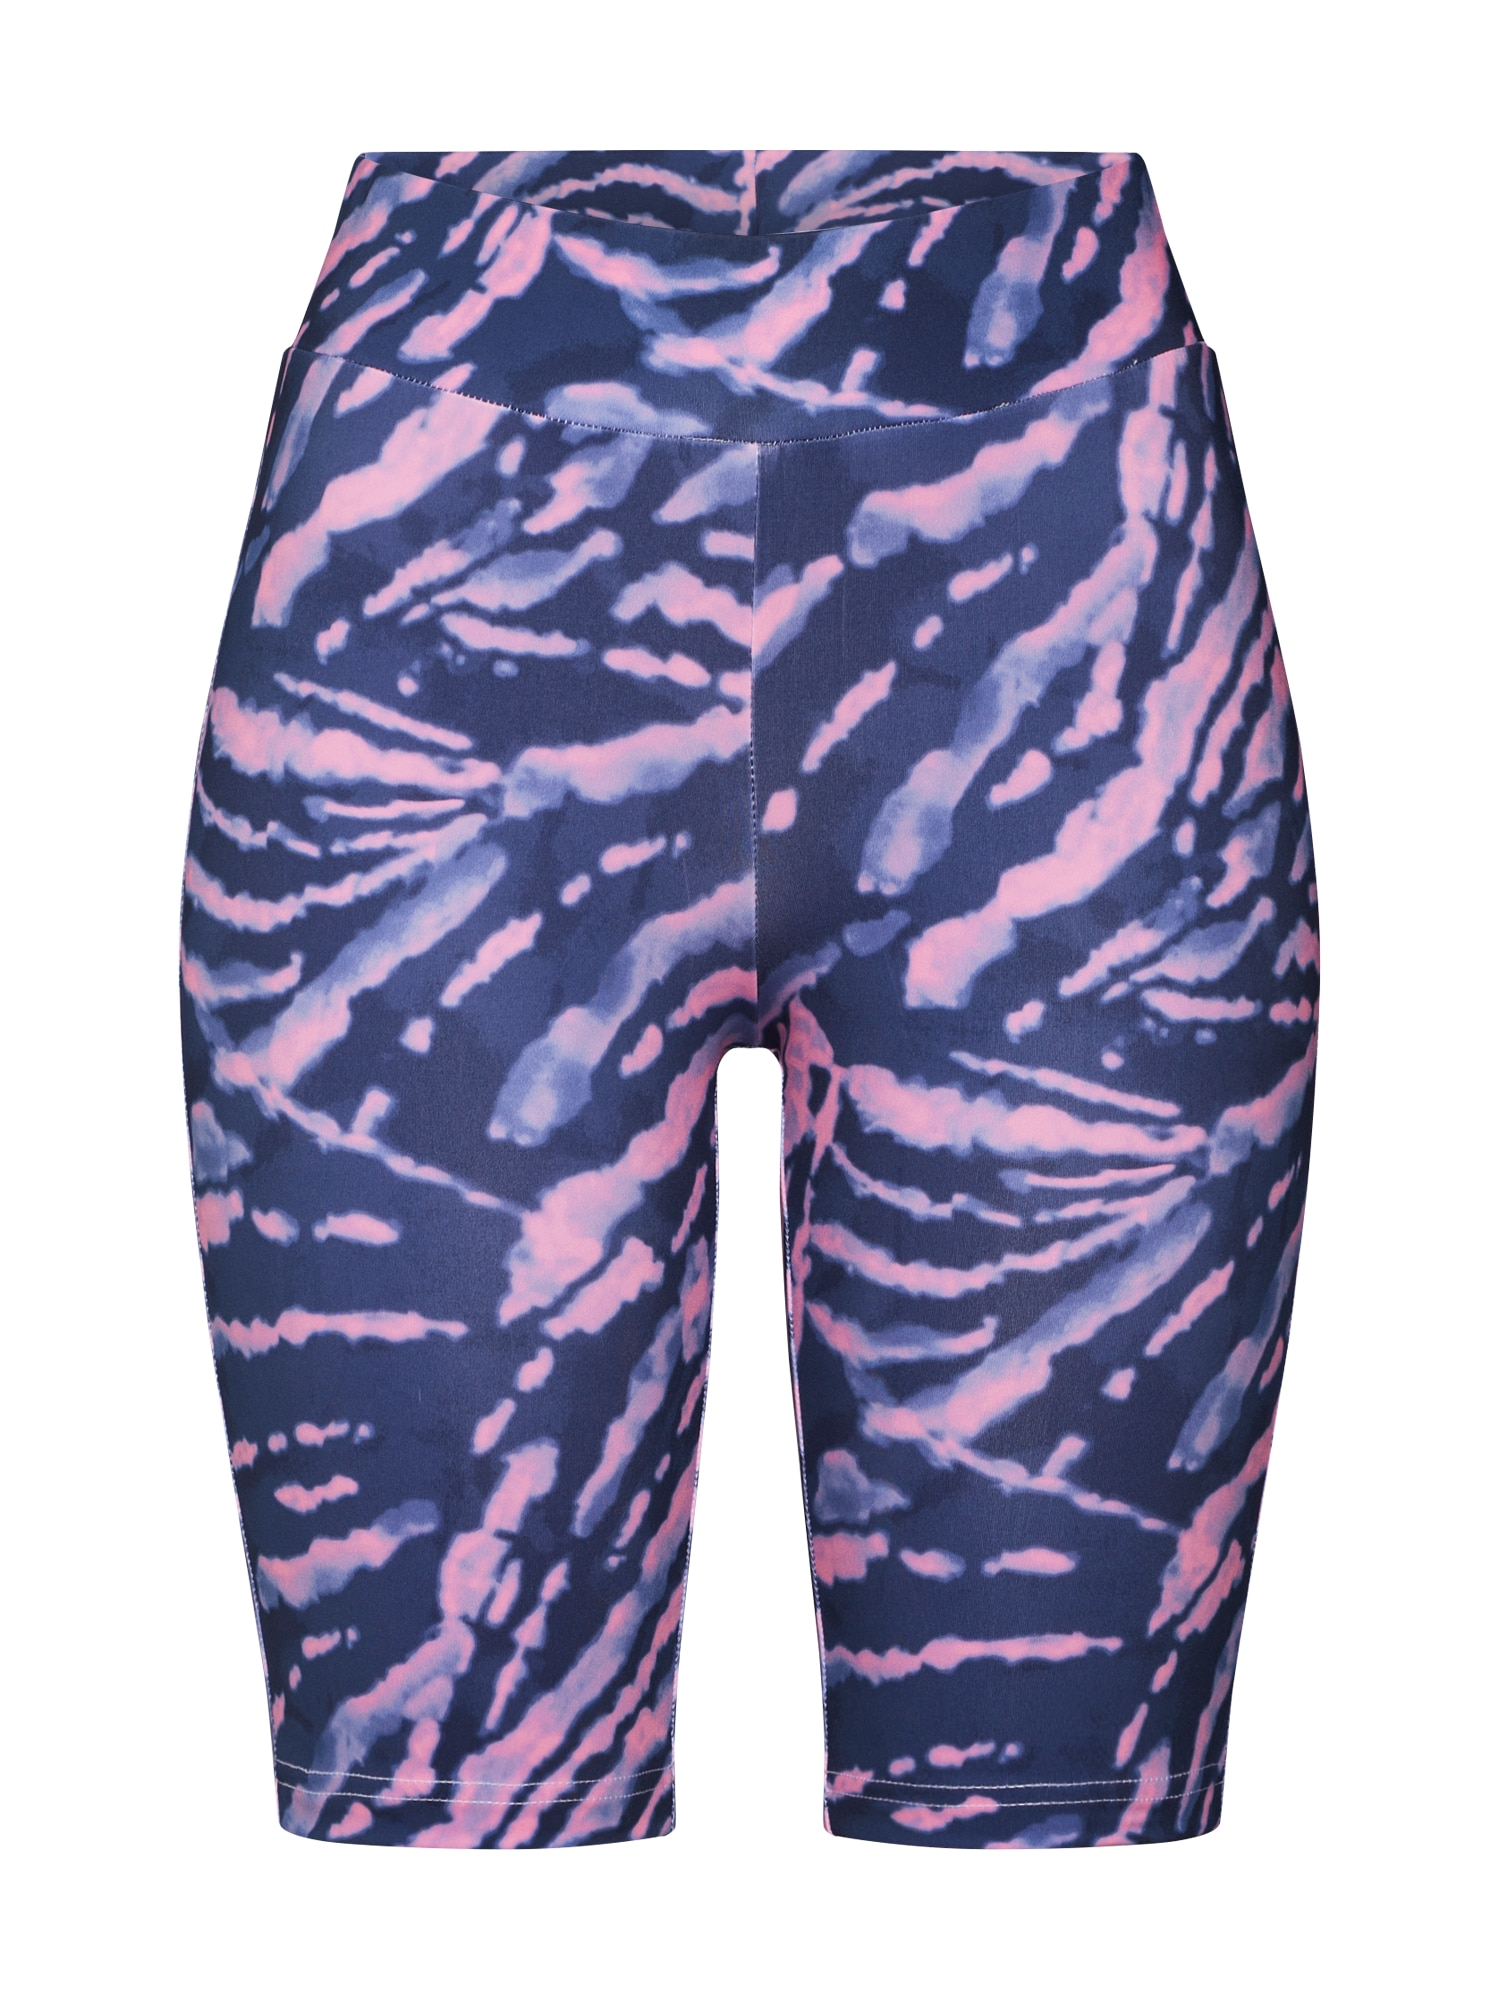 Urban Classics Sportinės kelnės 'Ladies Tie Dye Cycling Shorts' purpurinė